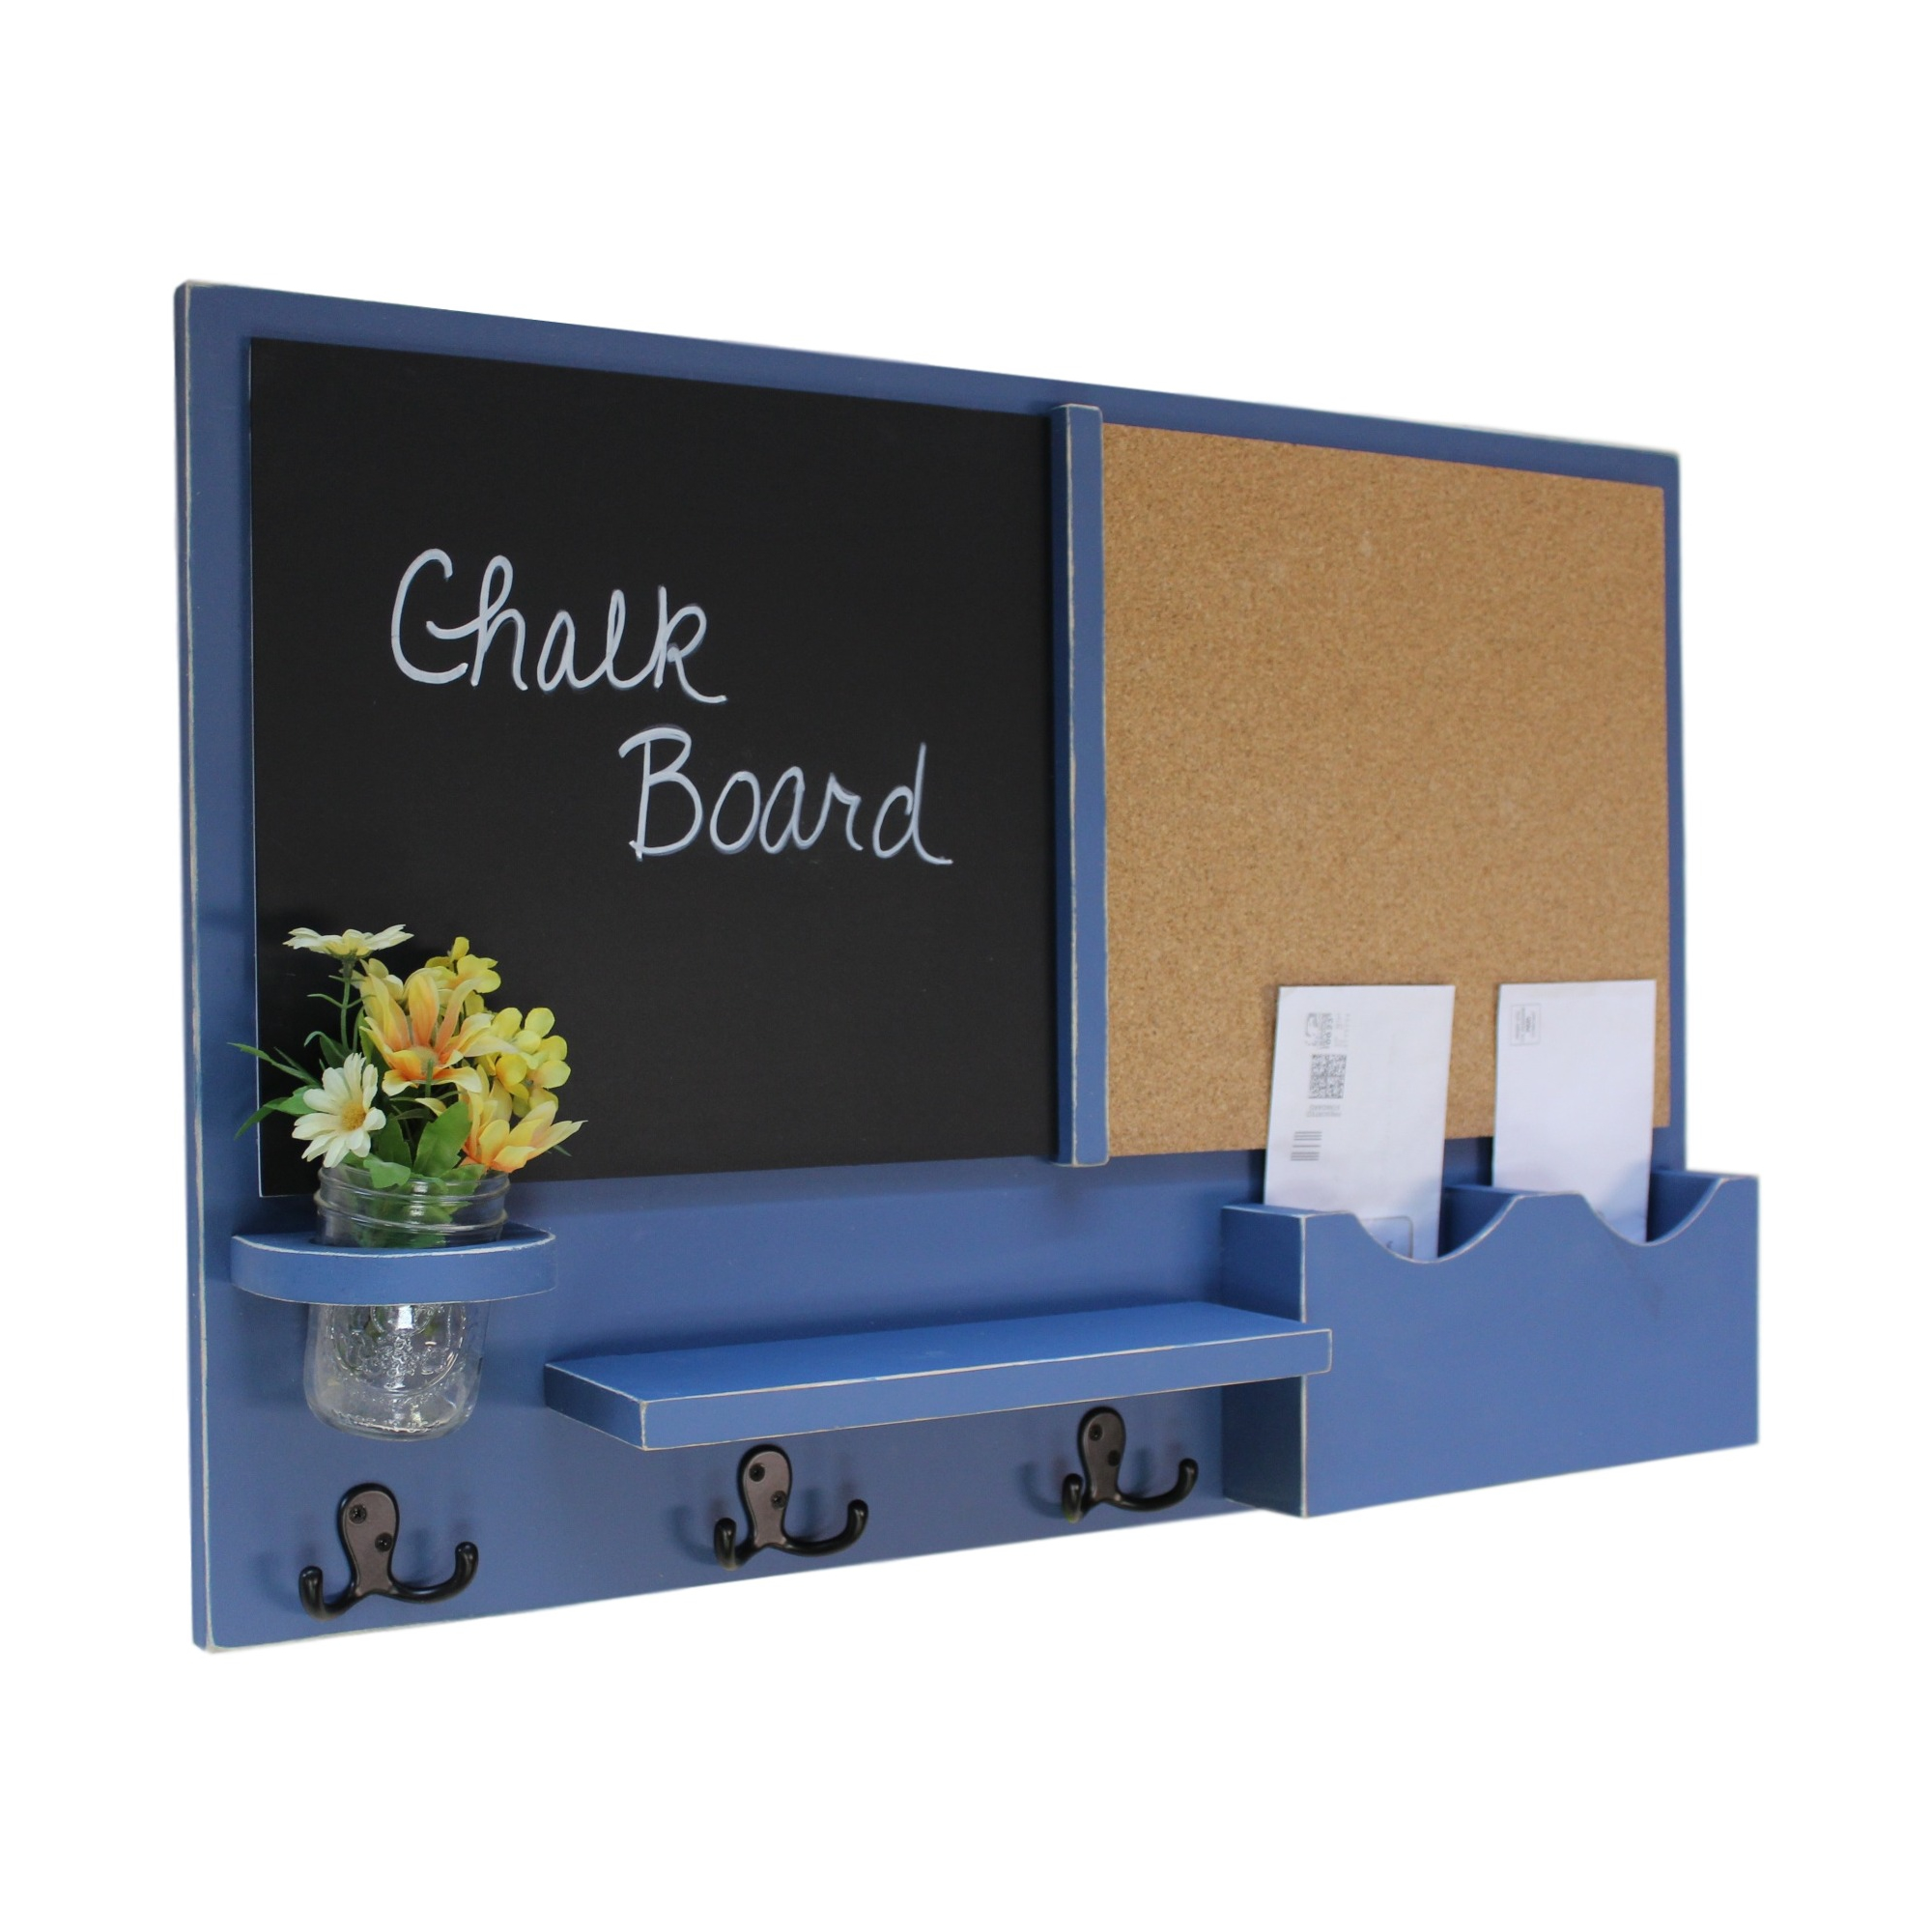 Message Center Chalkboard & Cork Board Letter Holder with Coat Hooks & Mason Jar